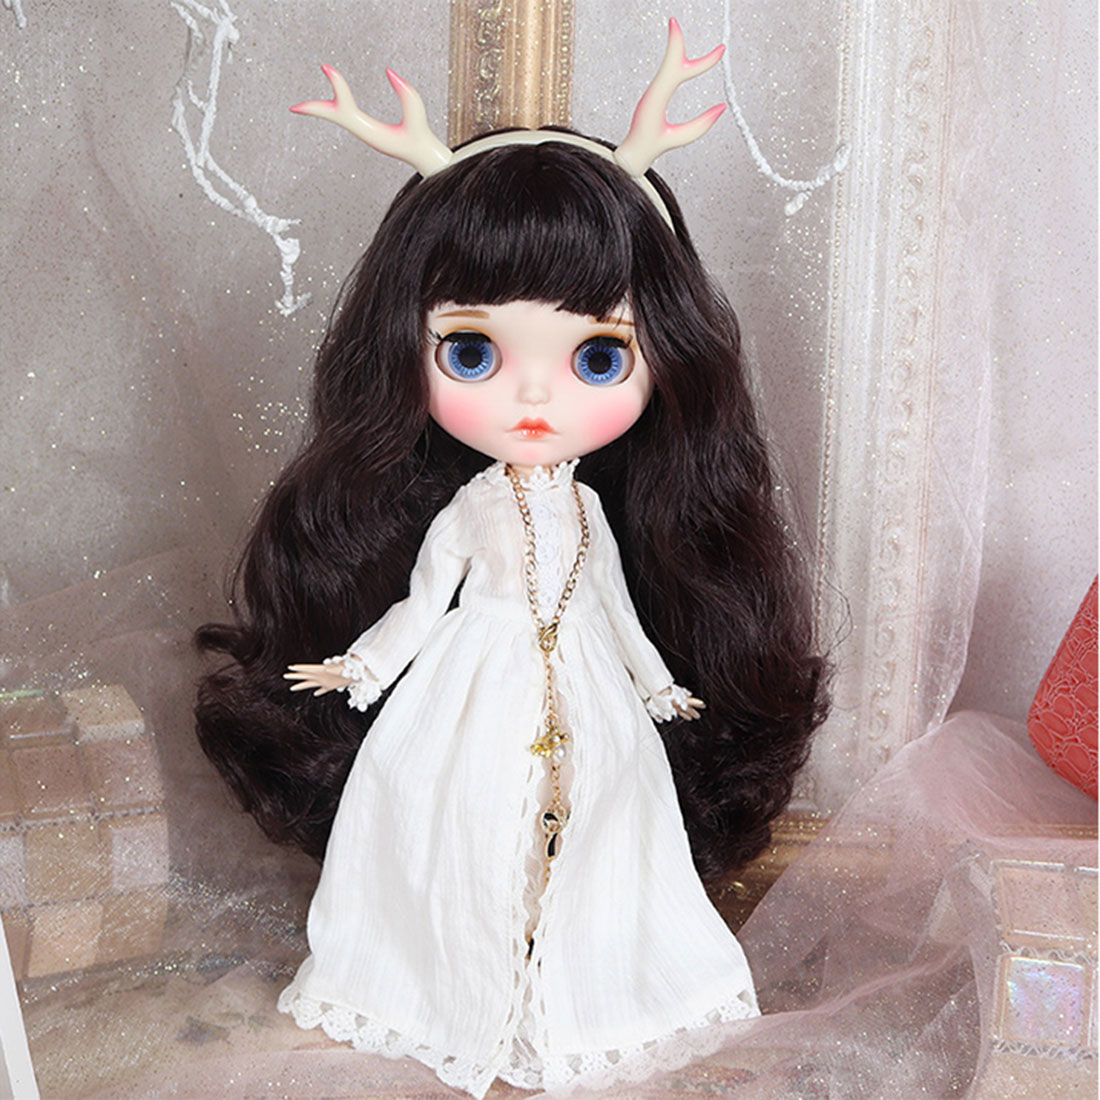 19 Joints 1/6 Matte Makeup Big Eyes Doll with Full Clothes and 9Pair Hands Model Educational Toy Blyth  Dolls - 13th Anniversary